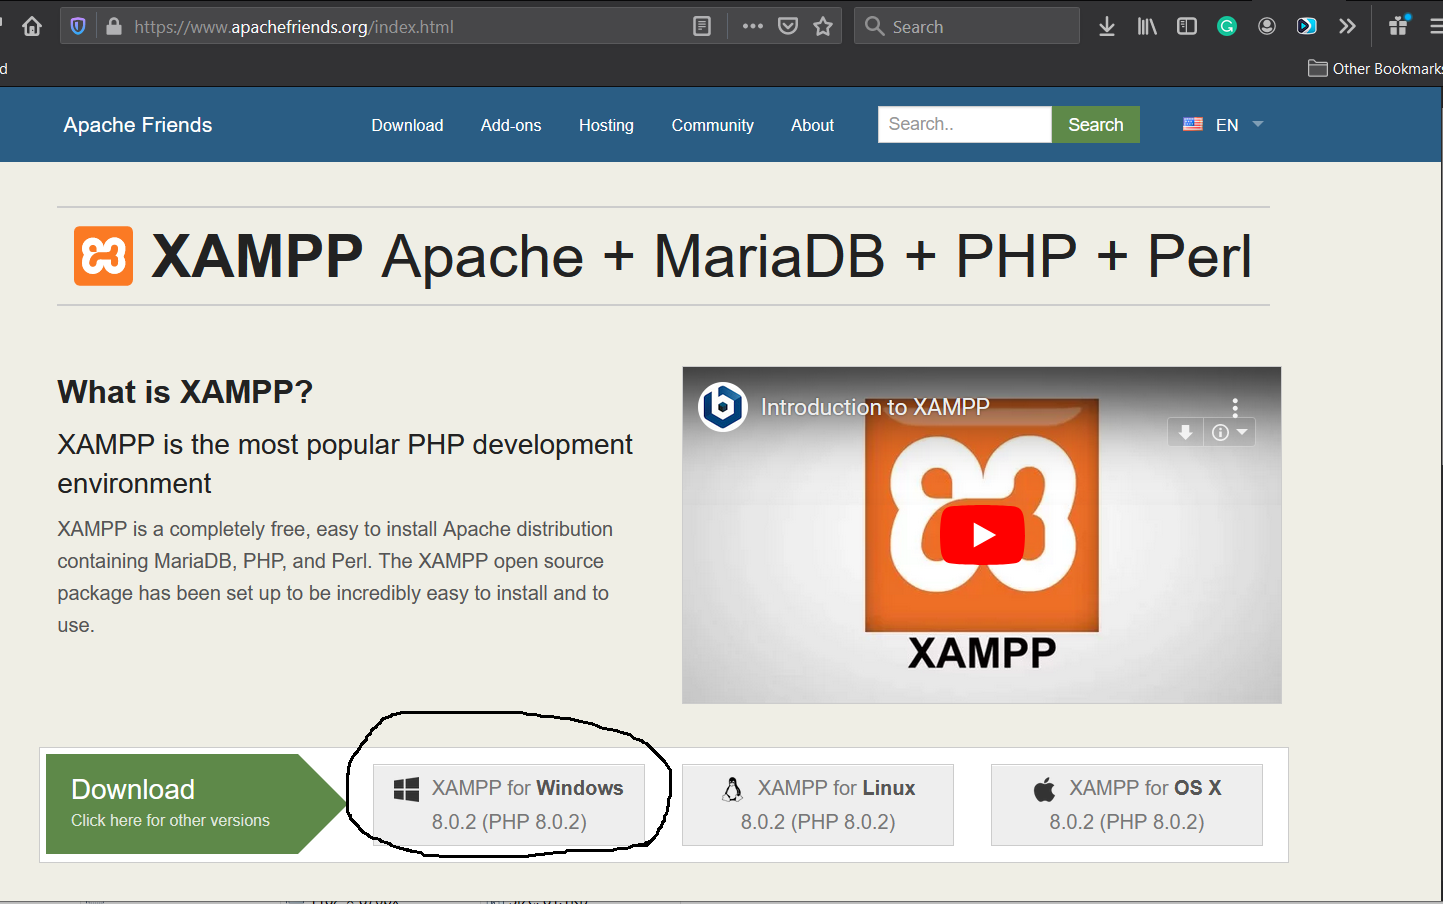 Install XAMPP on Windows 10 - Download Options - Apache Friends